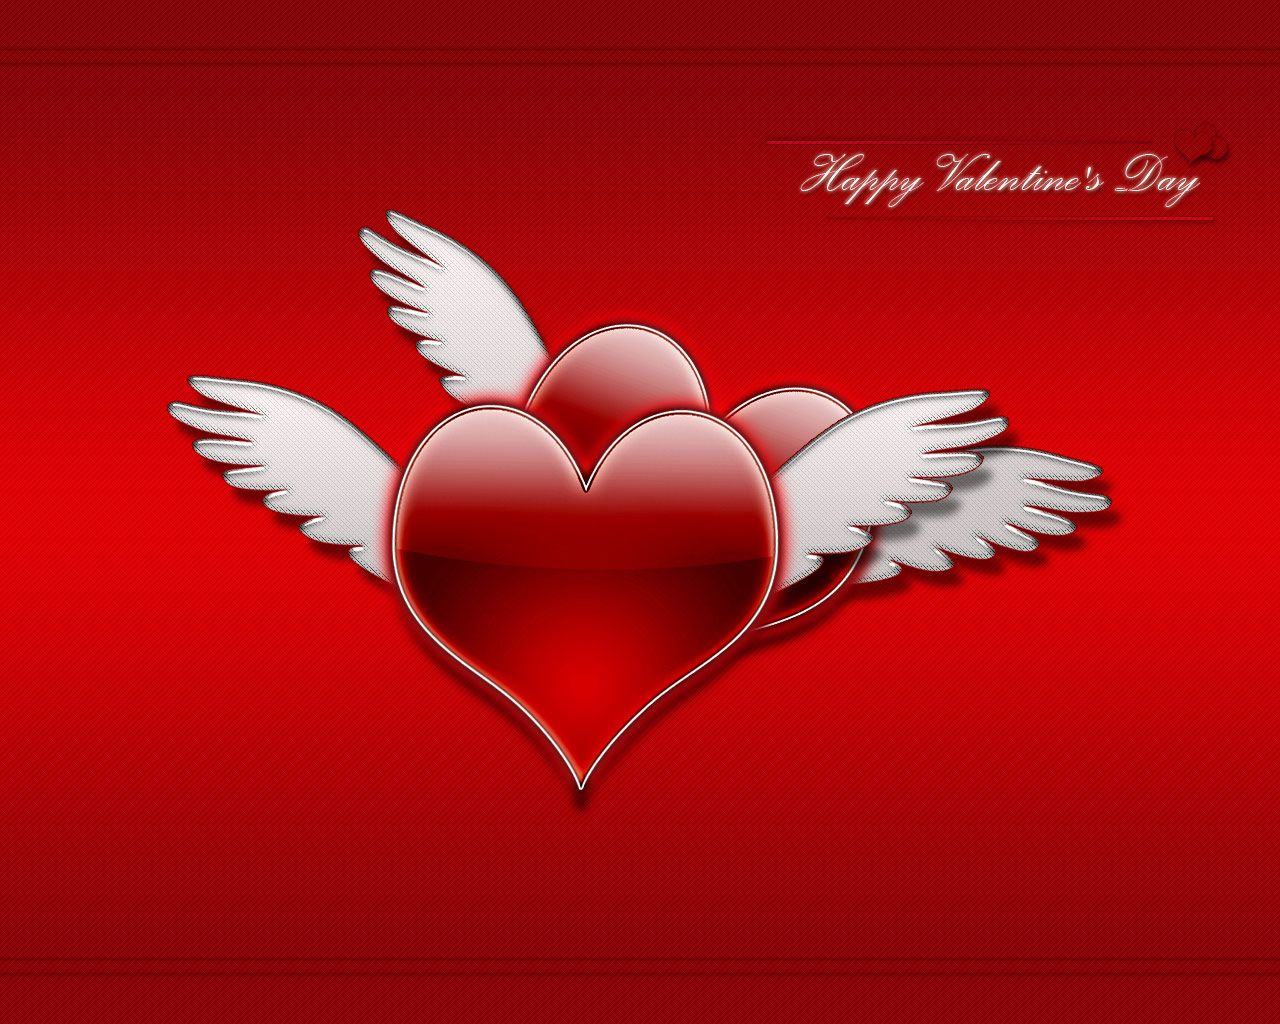 Valentines day greetings and wallpapers lovers day cinipictures valentines day greetings and wallpapers lovers day kristyandbryce Image collections